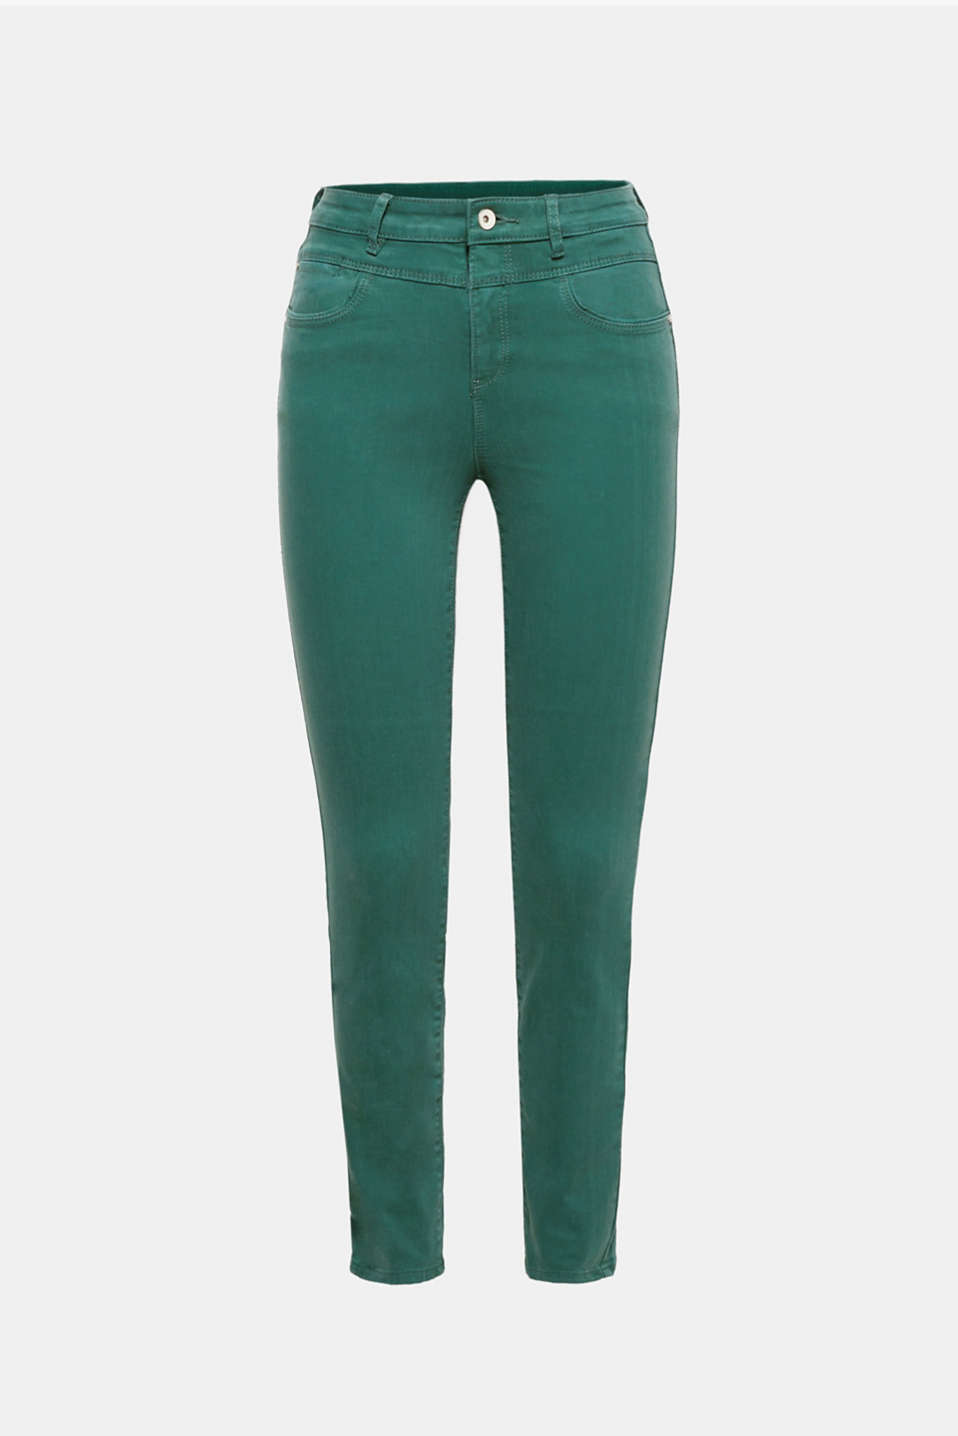 These lightweight, high-waisted stretch jeans with 5 pockets are perfect for spring and summer!